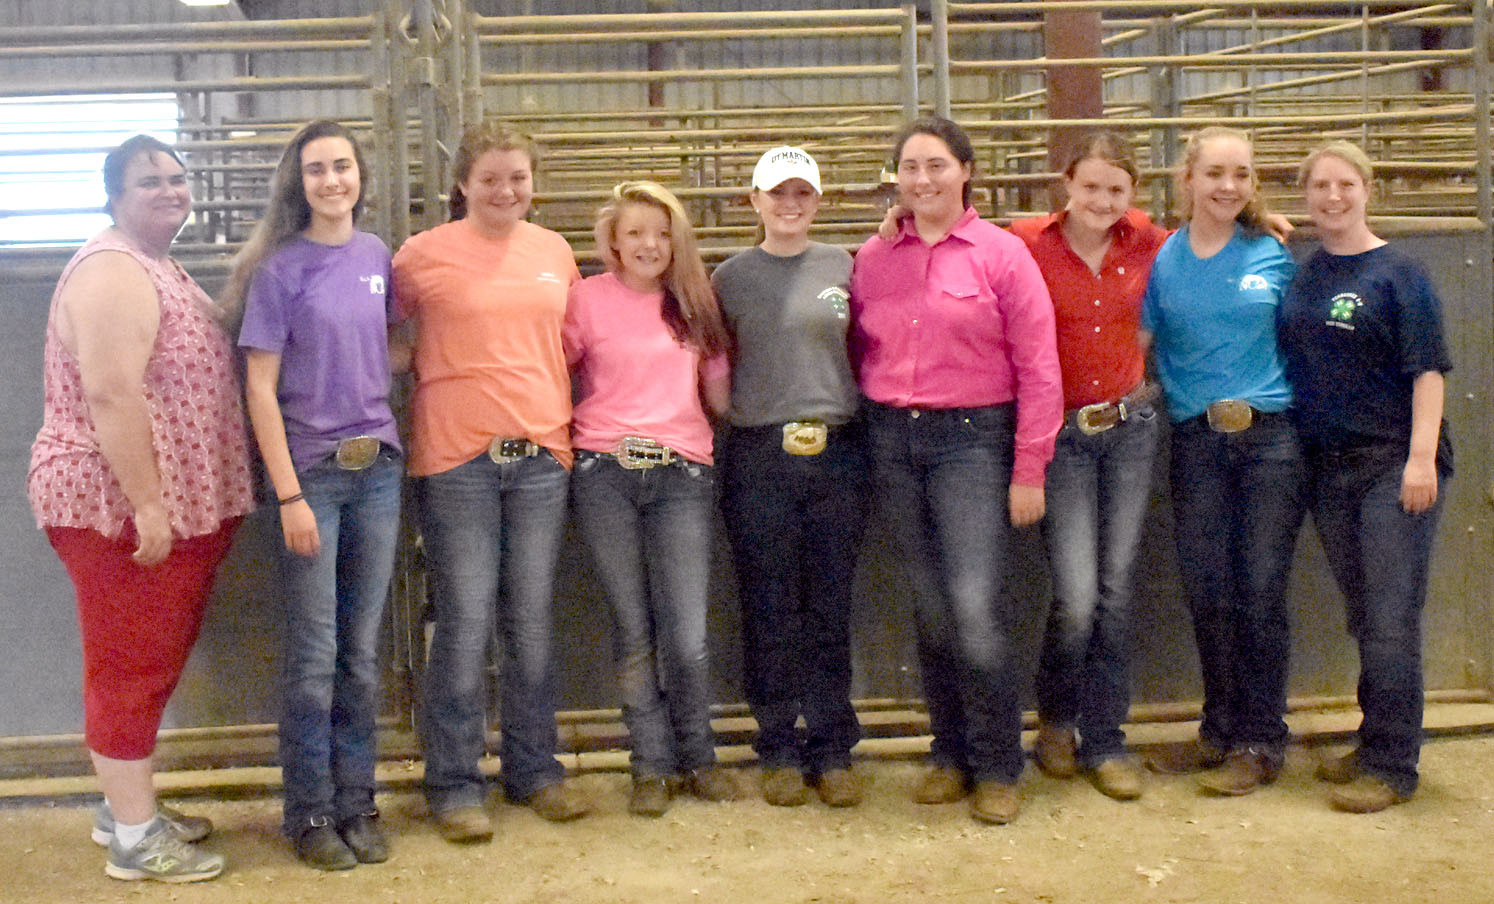 Attending the Eastern Region Horse Show from Bradley County were Jennifer Myers (co-leader), Kaitlyn Madson, Rylie Millsaps, Maggie Sims, Kyra Petty, Stephanie Bates, Payton Schwager, Lily McDonald and Sarah Petty (co-leader).